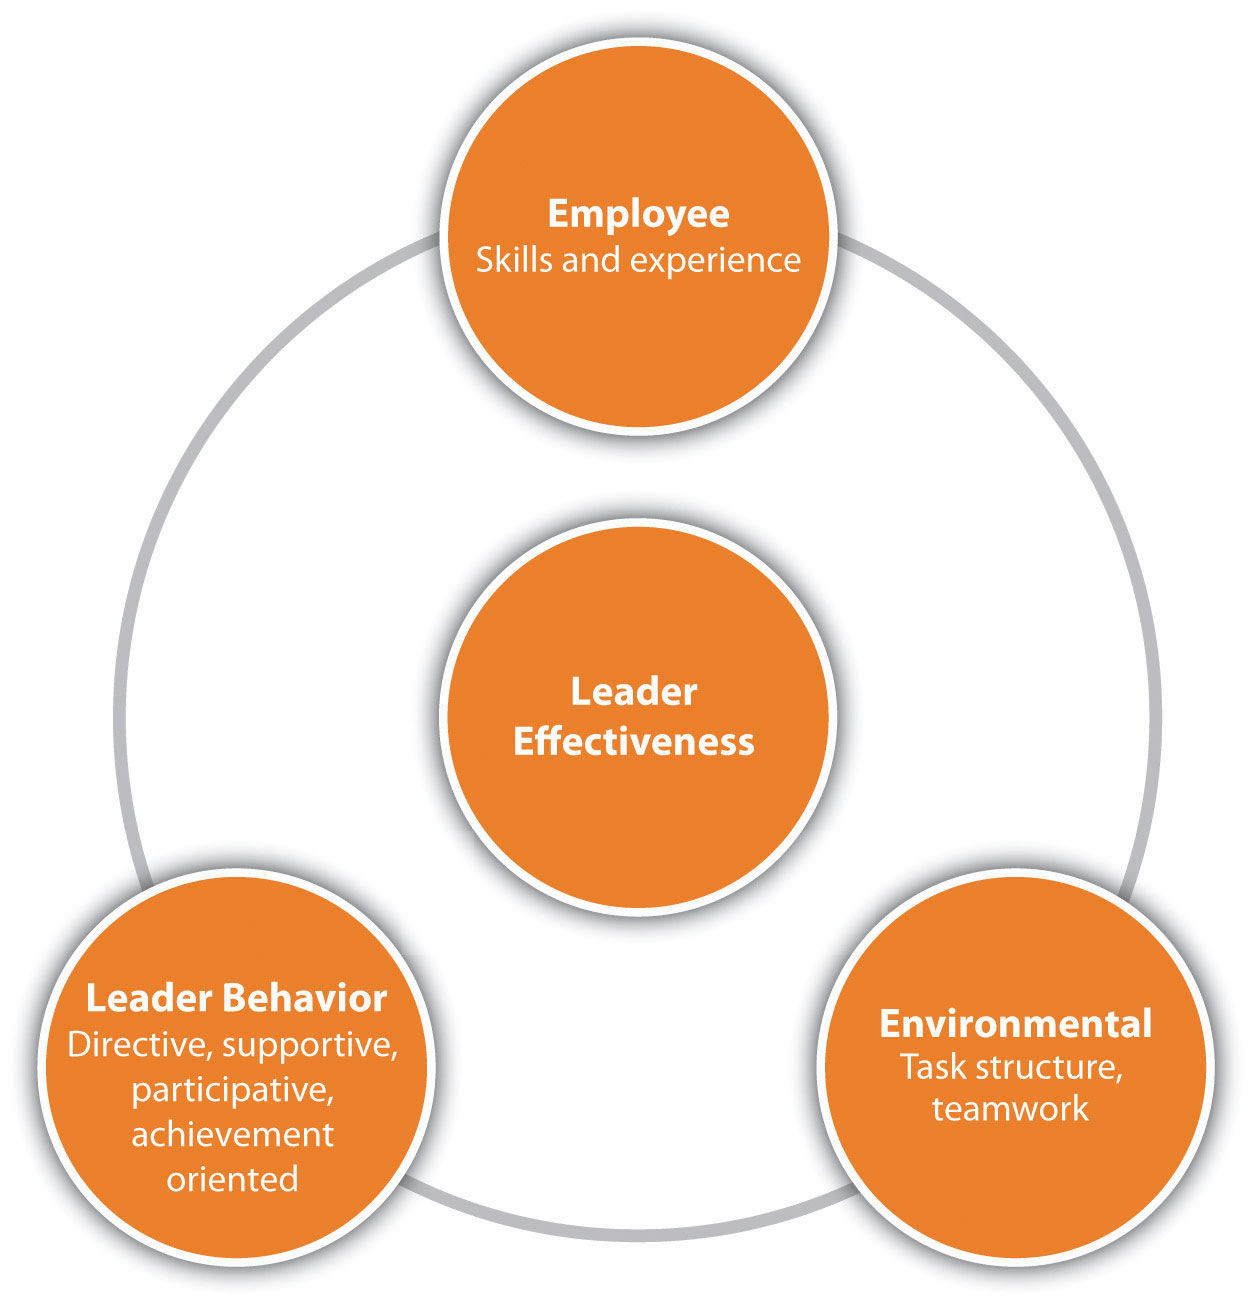 Path Goal Model for Leadership: Employee (Skills and experience), Leader Behavior (Directive, supportive, participative, achievement orientated), and Environmental (Task structure, teamwork)